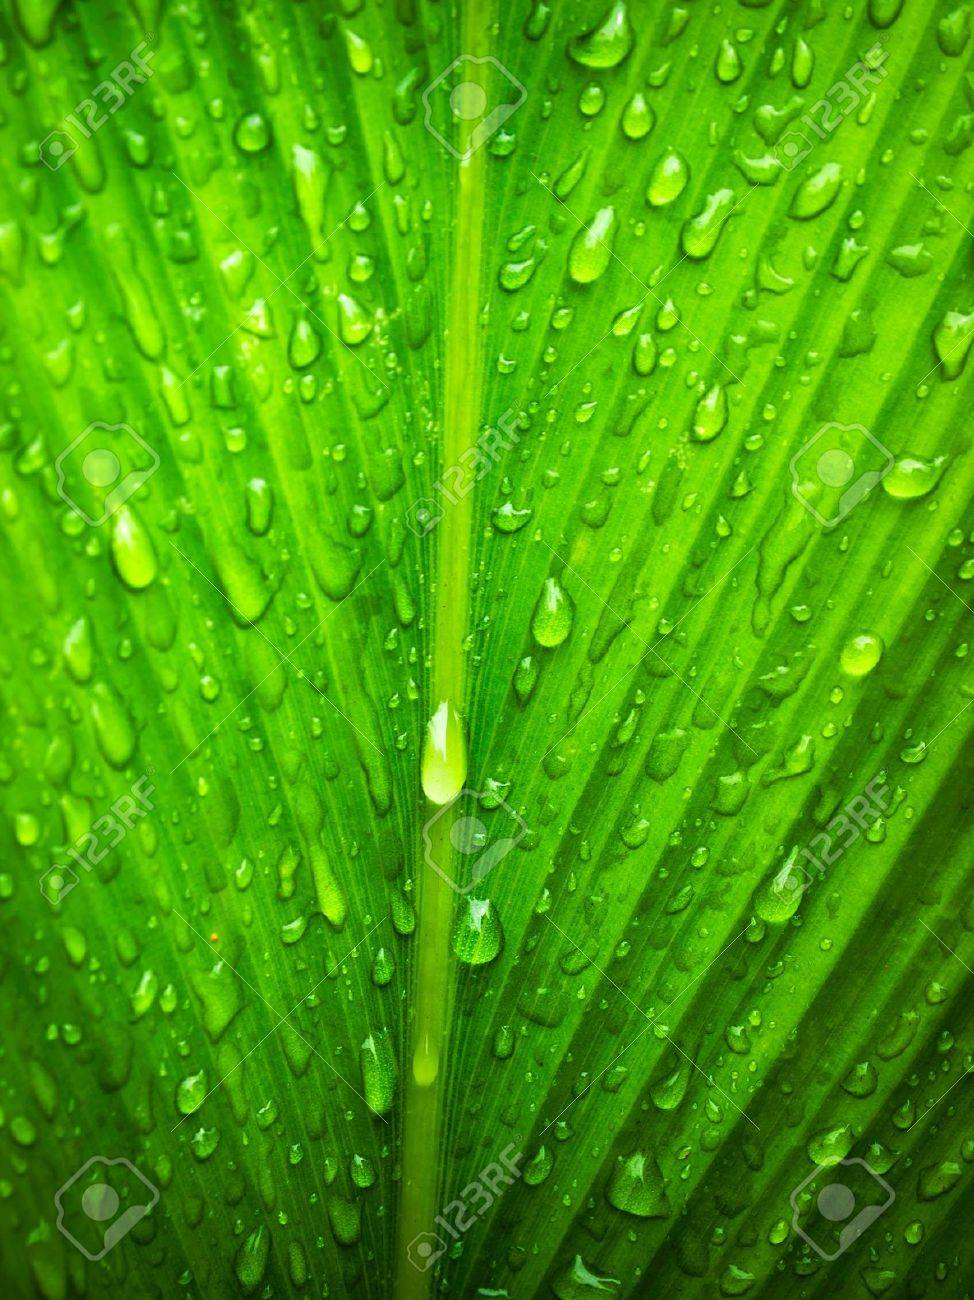 water drop on Green leaf background abstract of nature Stock Photo - 7594316